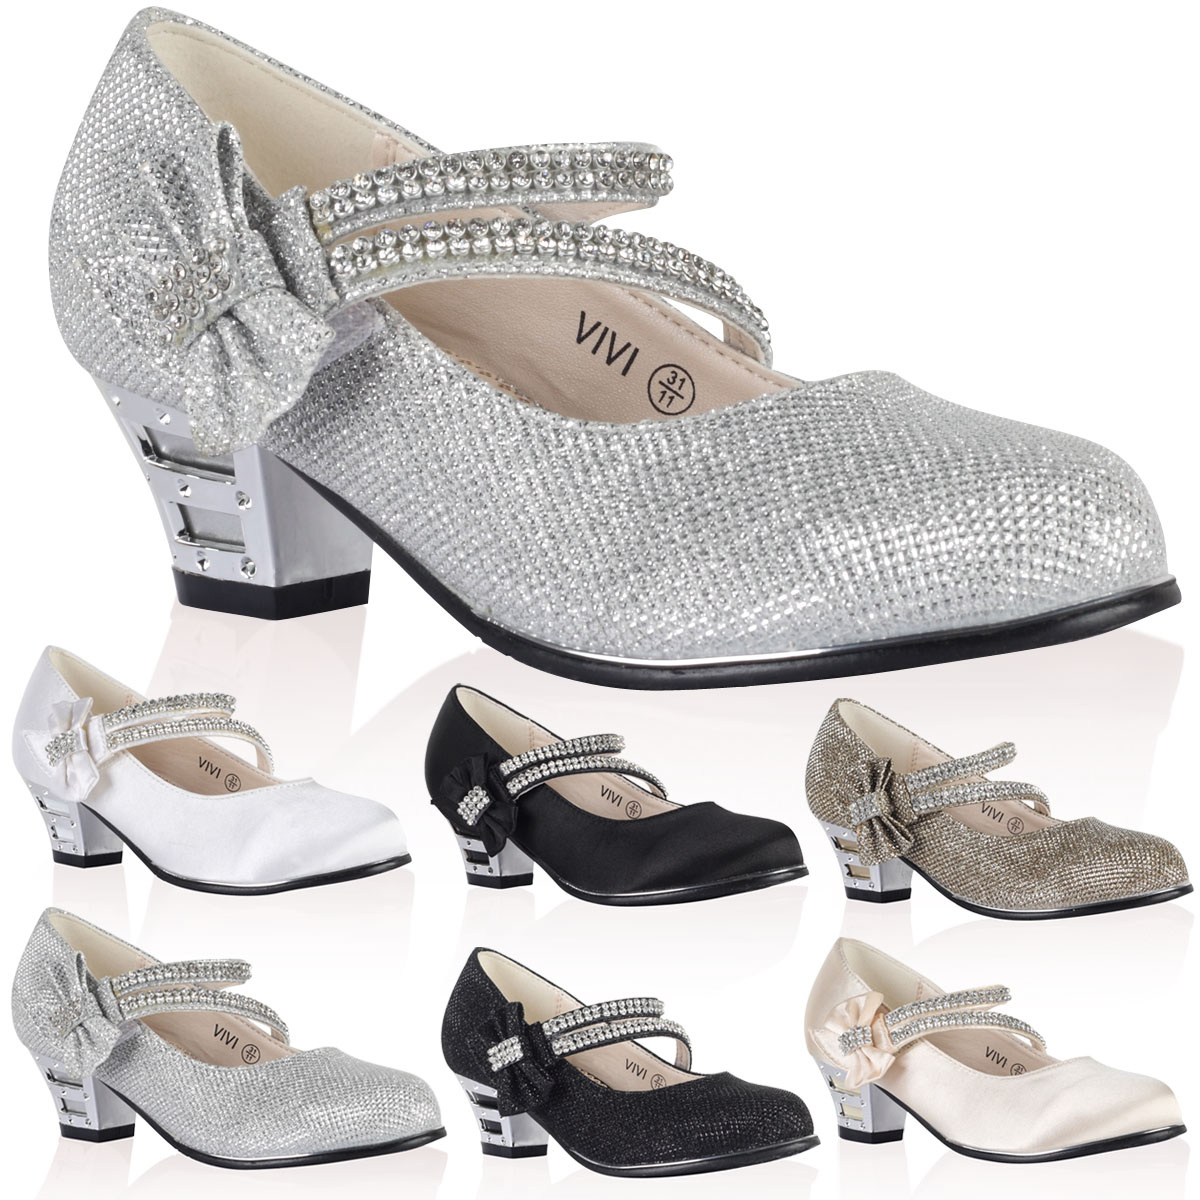 6Z GIRLS DIAMANTE BOW KIDS SPARKLE PARTY MARY JANE HEELED COURT SHOES SIZE 10-2